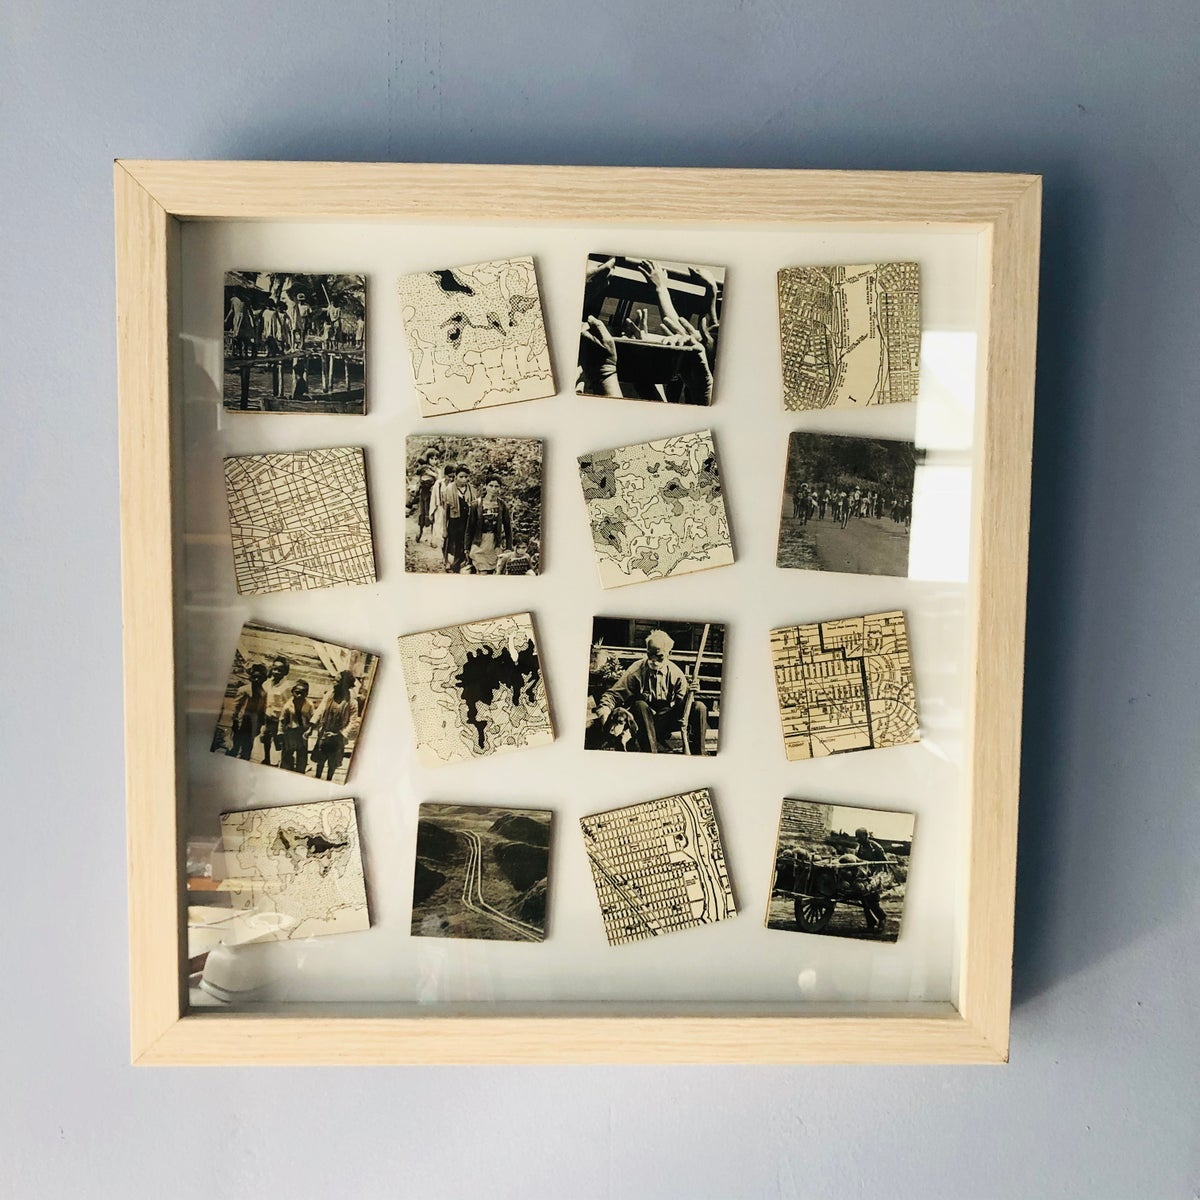 Image of MAP + PHOTO ART COLLAGE / BALTIC BIRCH / SHERRY TRUITT / DIASPORA: DISRUPTION IS EVERYWHERE